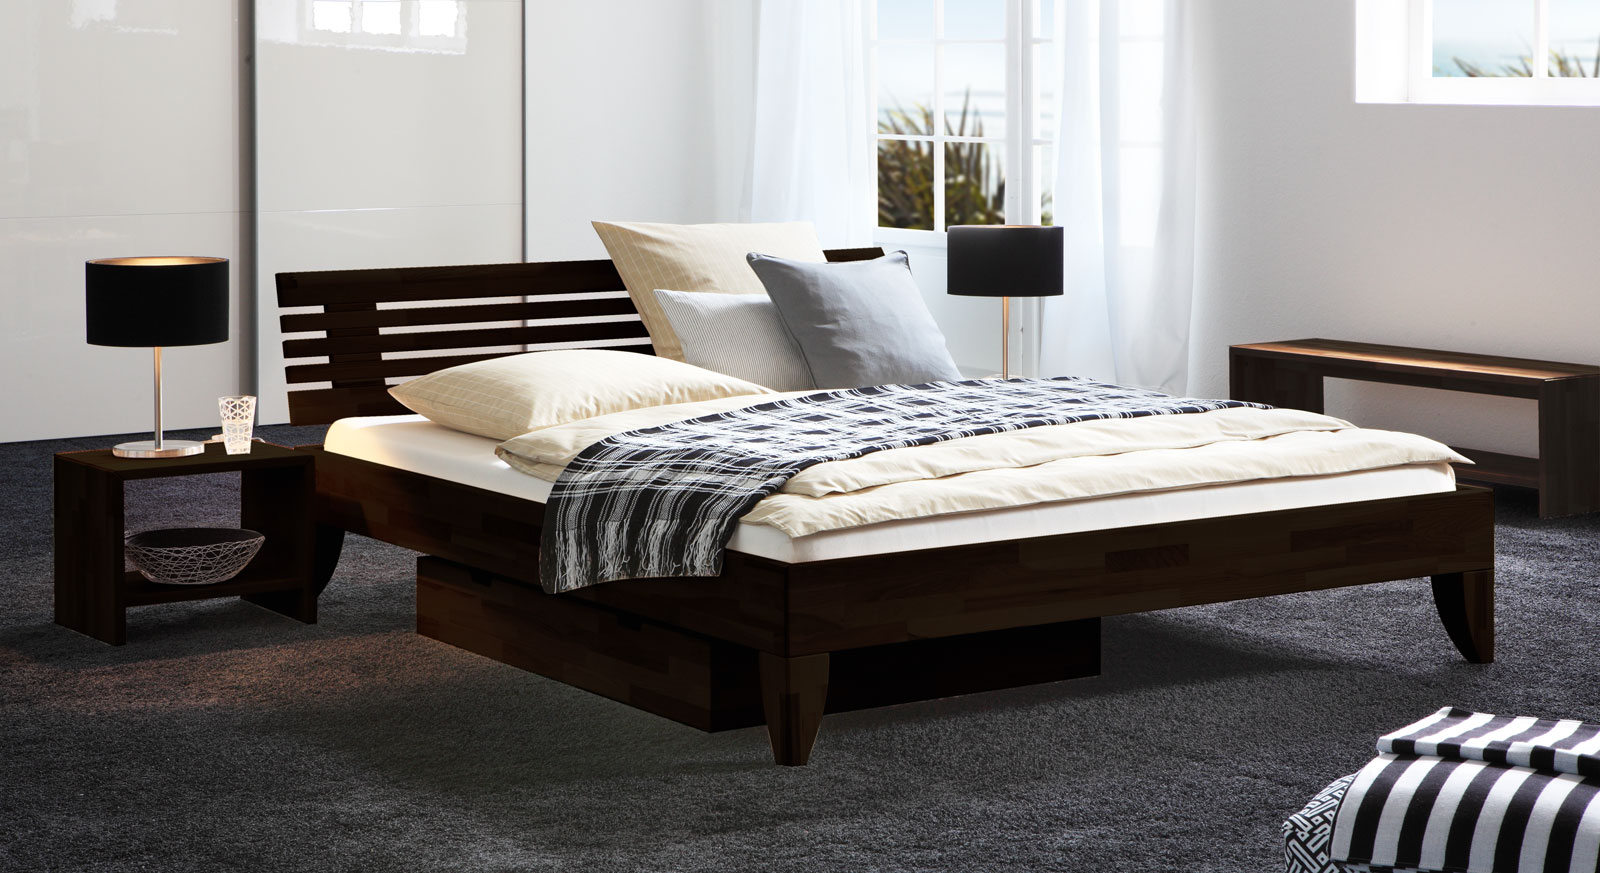 dunkles doppelbett aus massivem buchenholz bett fontana. Black Bedroom Furniture Sets. Home Design Ideas